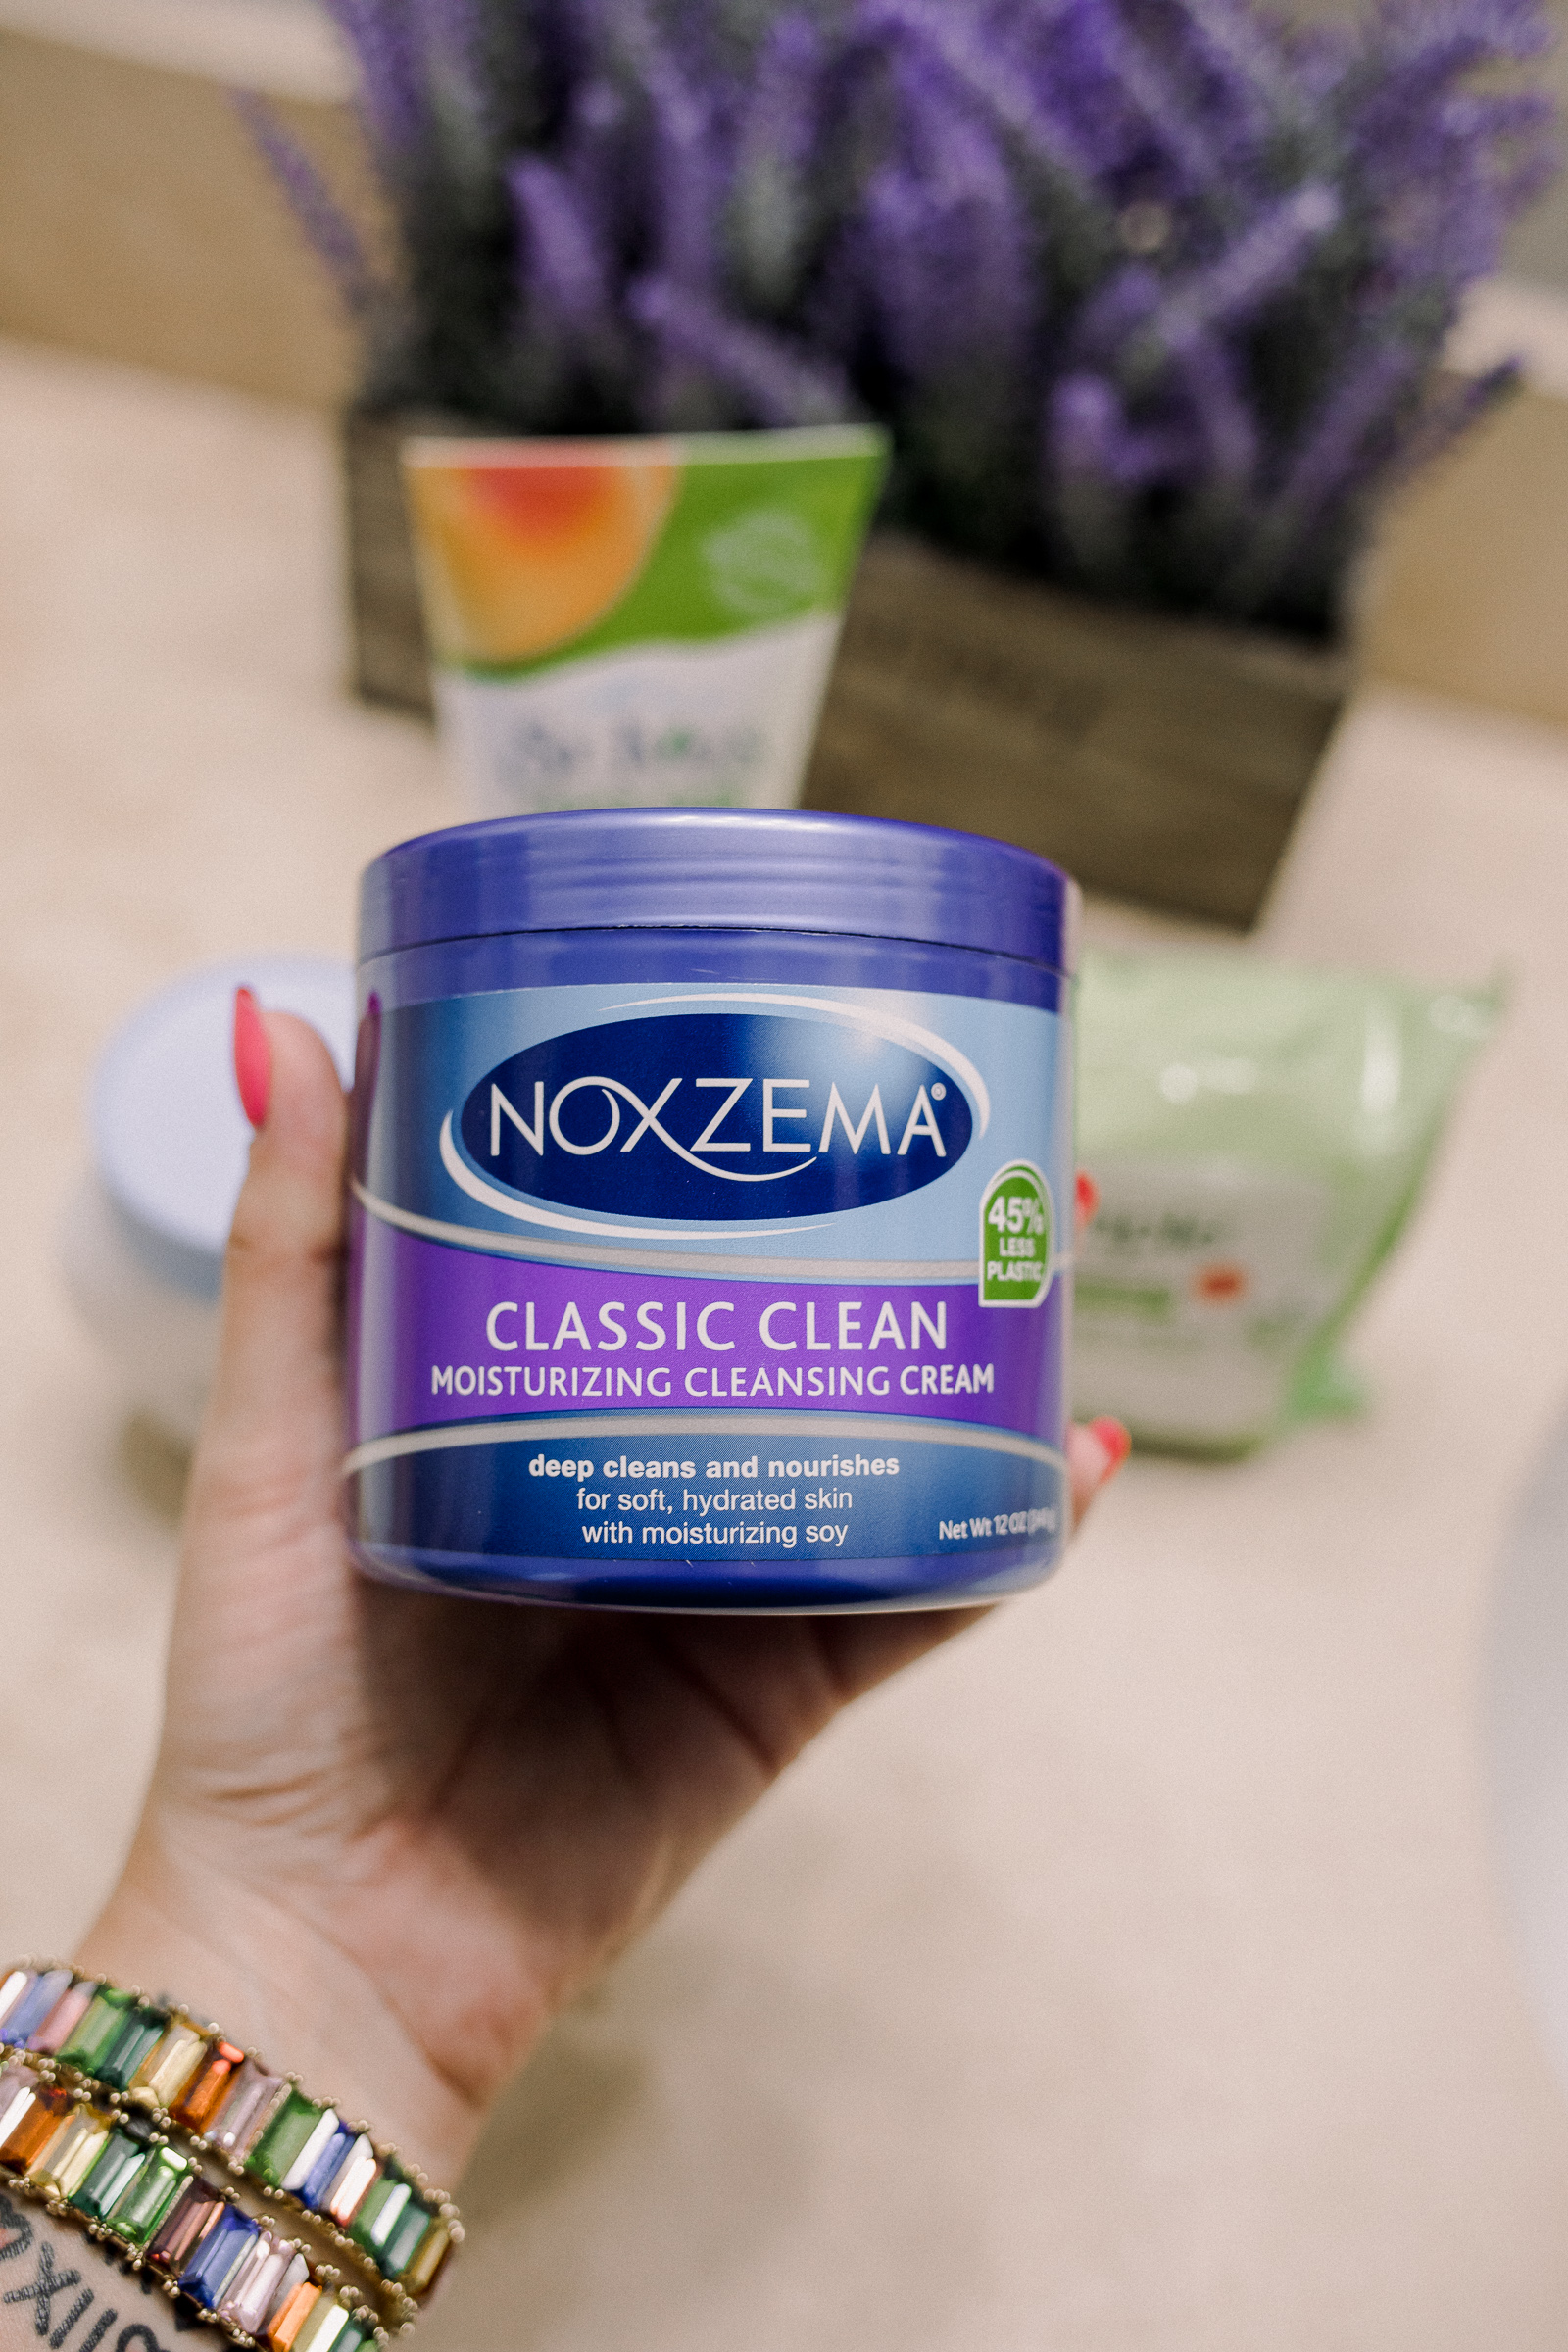 Houston beauty blogger Uptown with Elly Brown shares her review on the Noxzema Classic clean cleanser